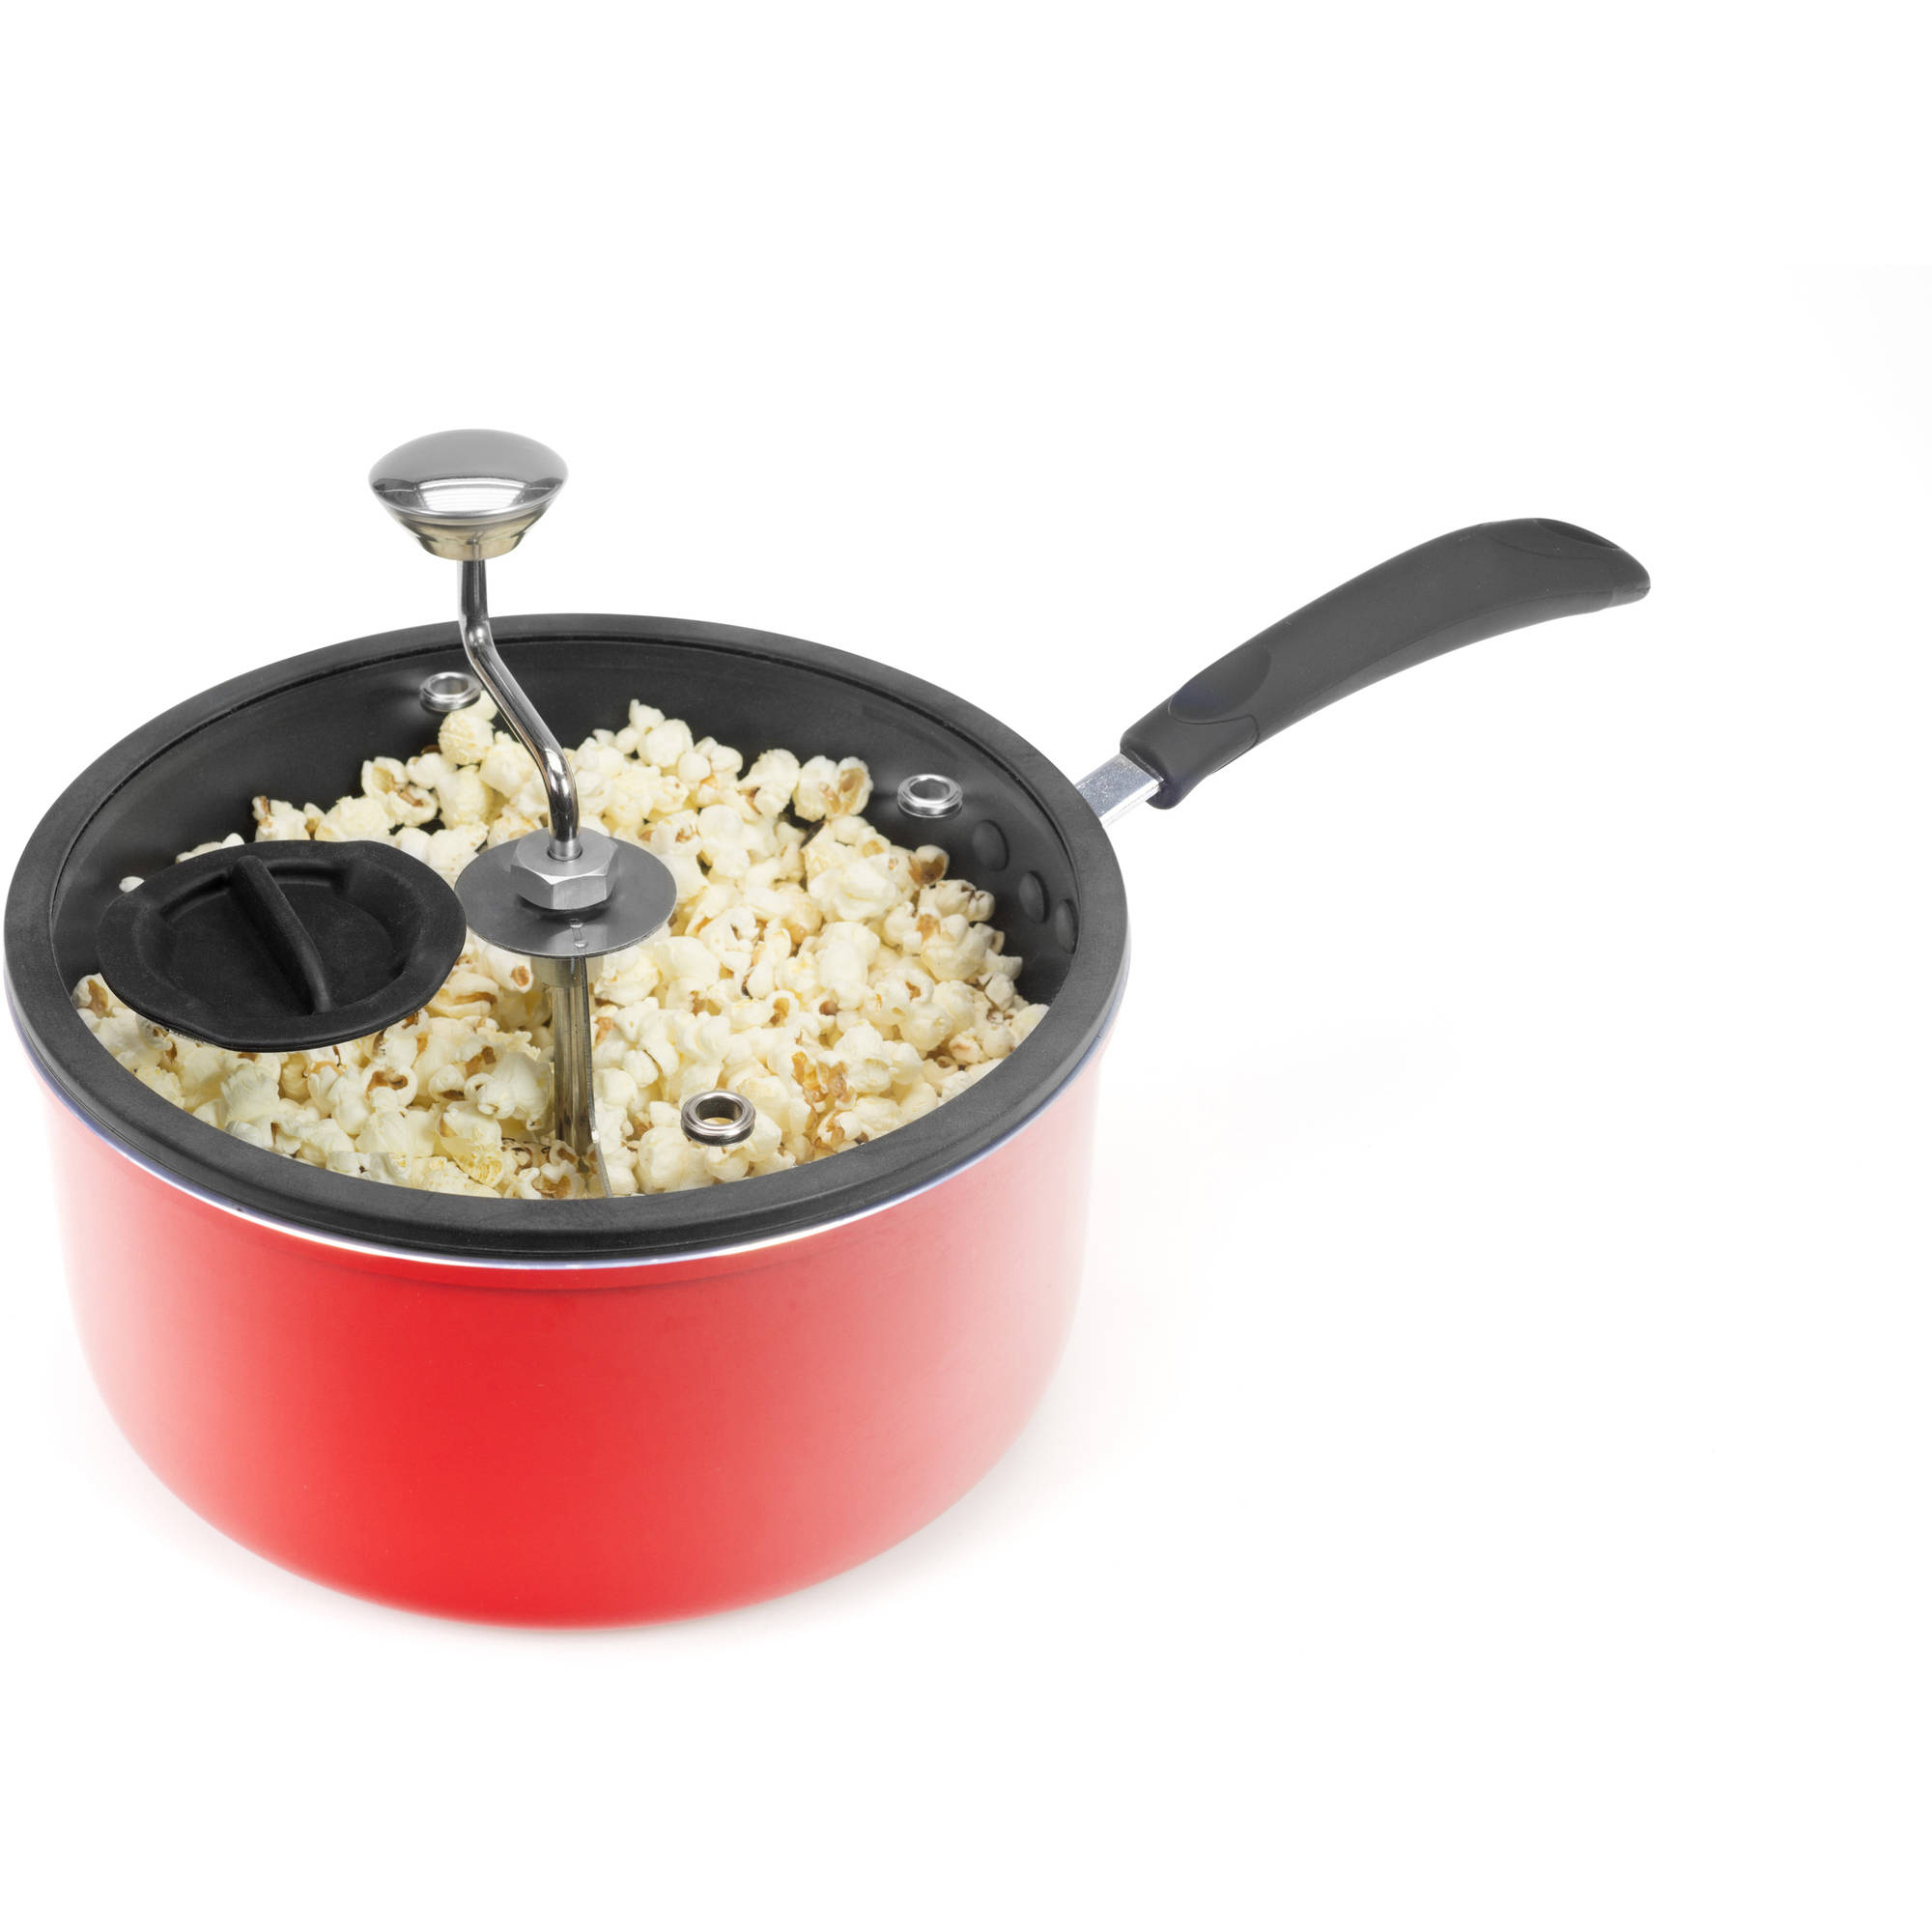 Generic Zippy 5.5-qt Stovetop Popcorn Maker with Glass Silicone-Rimmed Lid